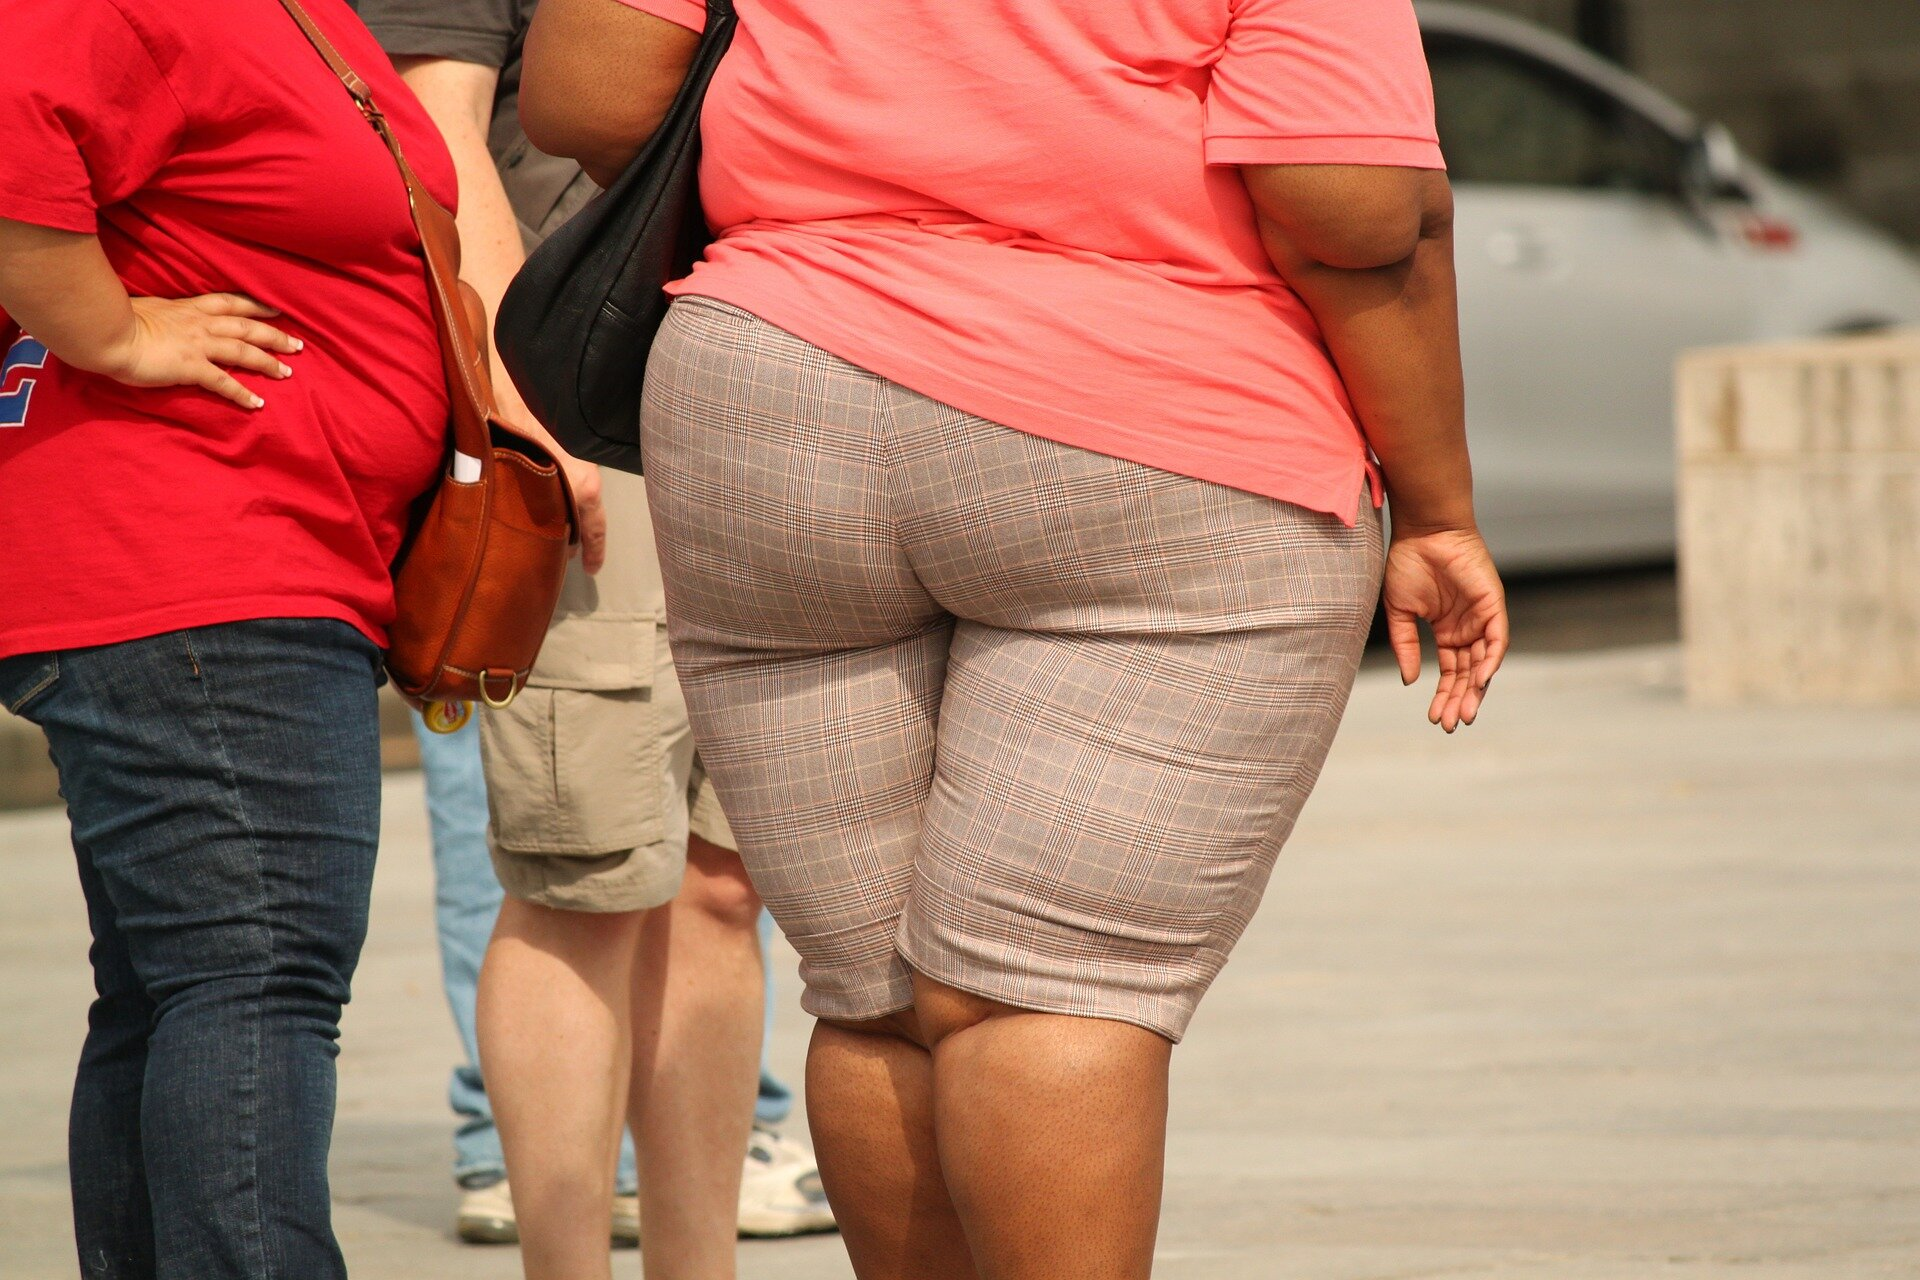 Obesity in Women